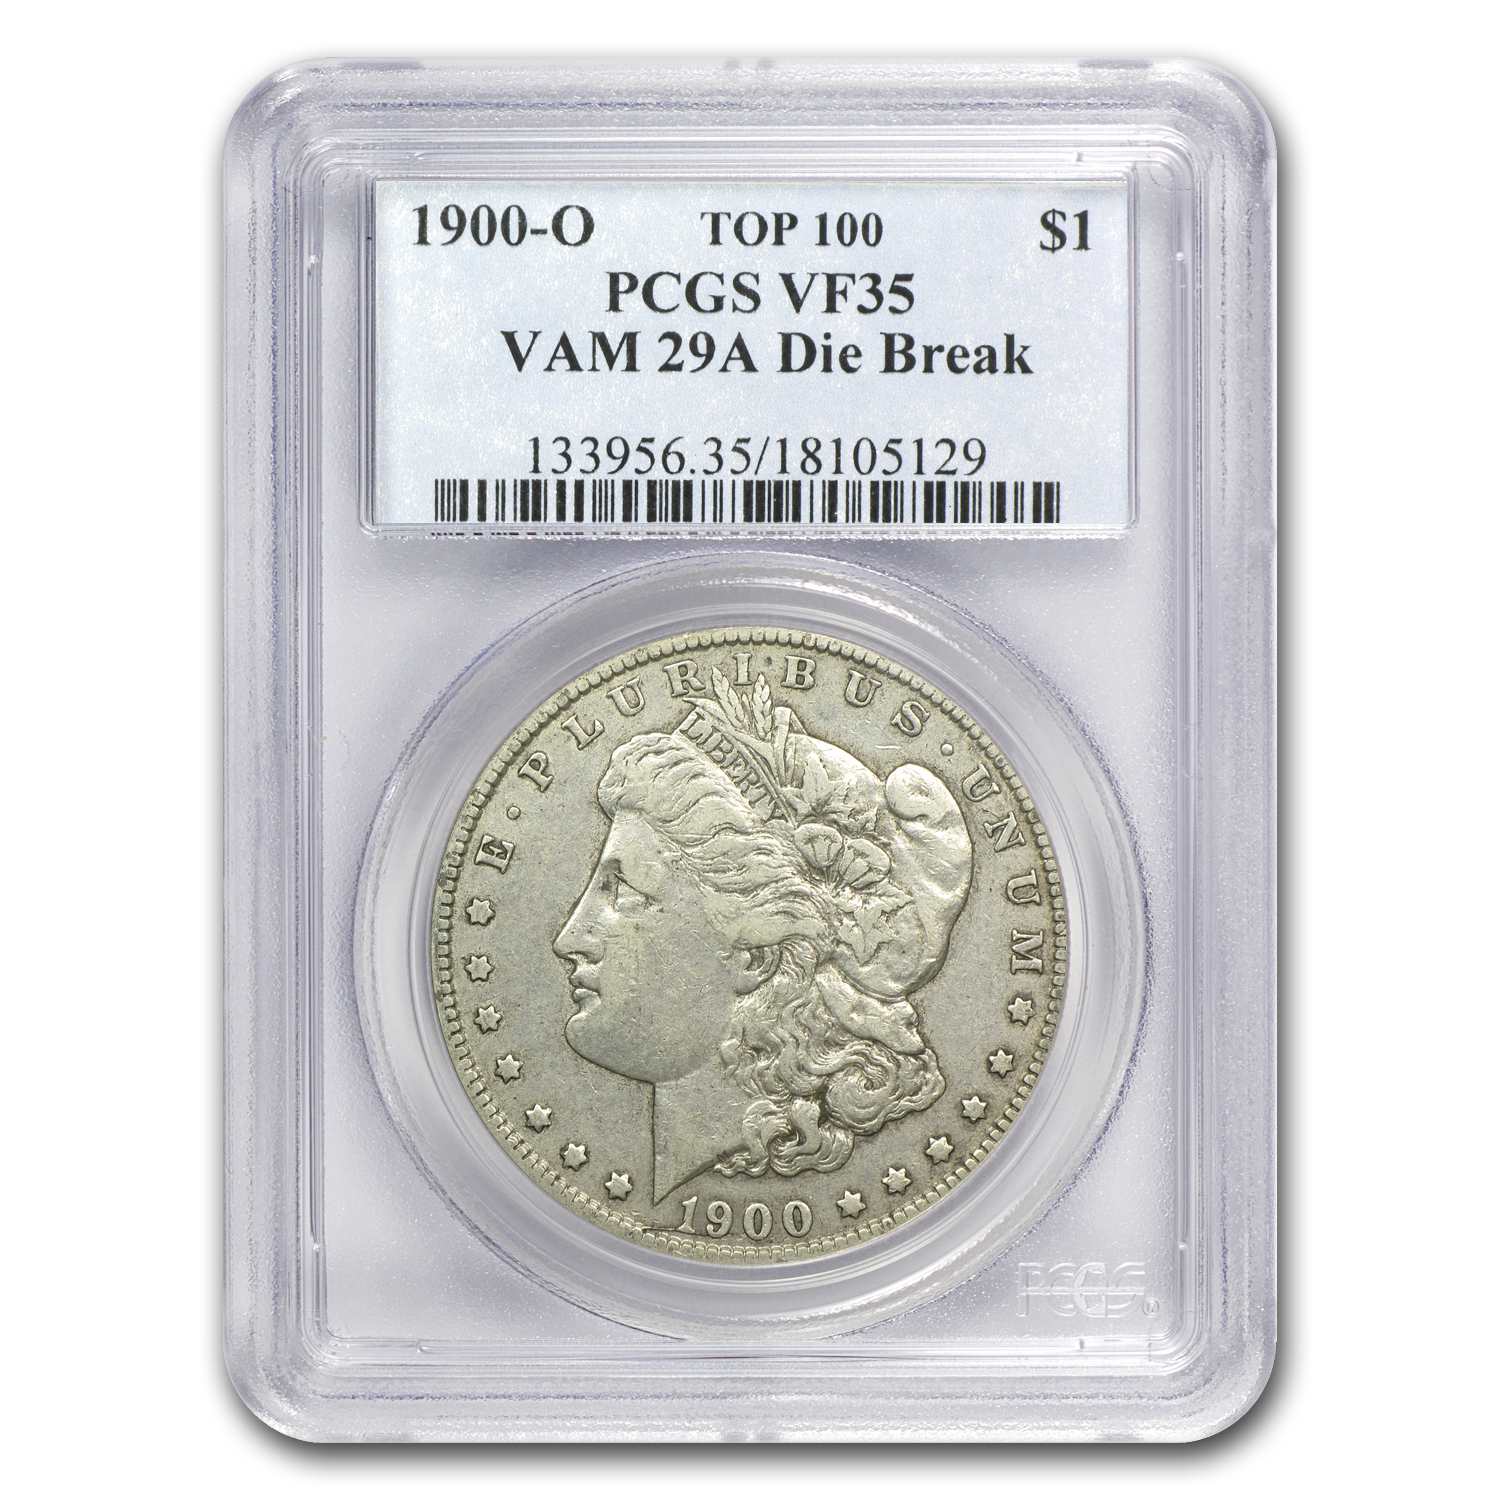 1900 O Vf 35 Pcgs Vam 29a Obverse Die Break Top 100